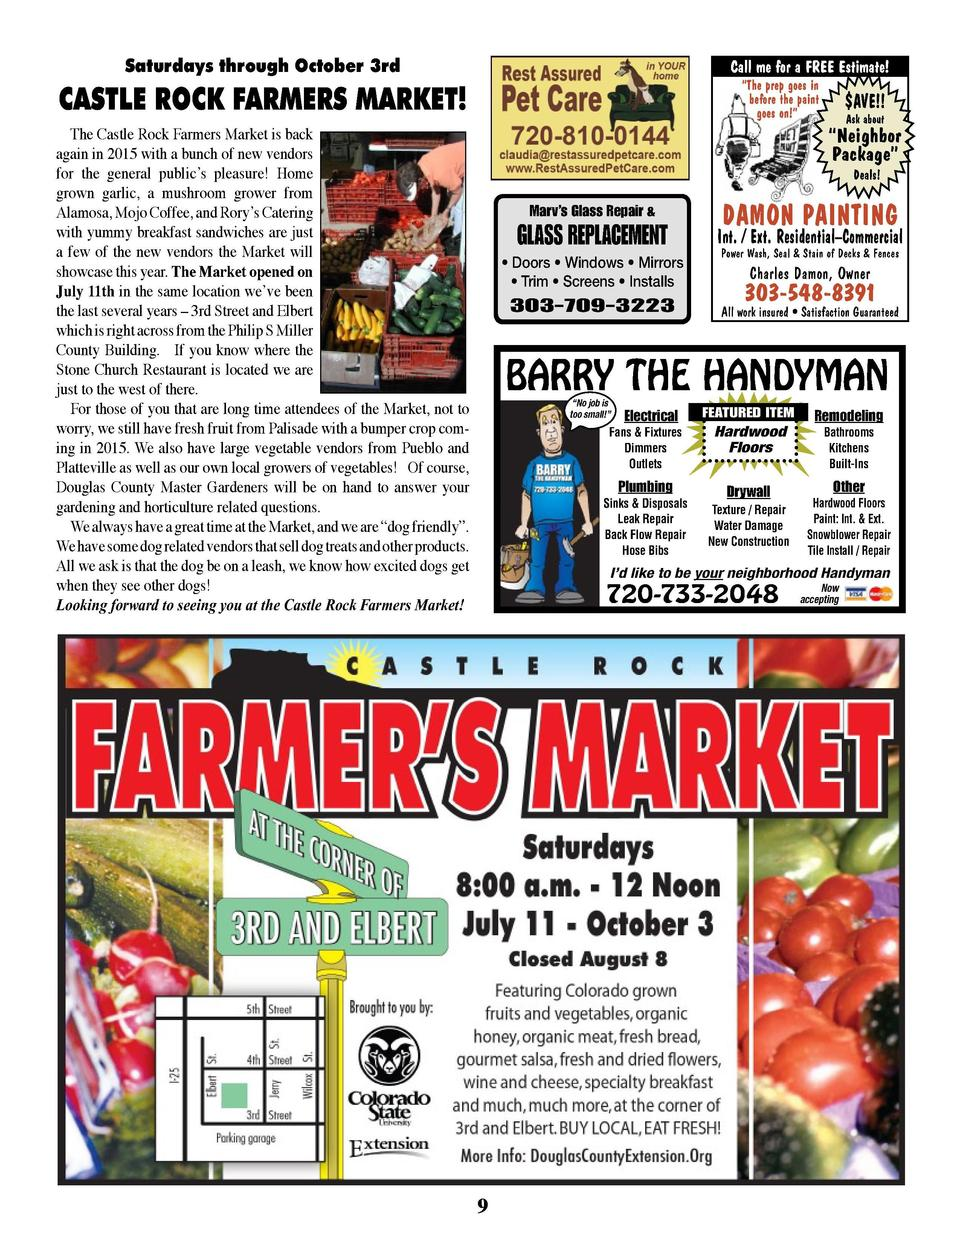 Saturdays through October 3rd  SUMMER SECURITY TIPS  The Castle Rock Farmers Market is back again in 2015 with a bunch of ...